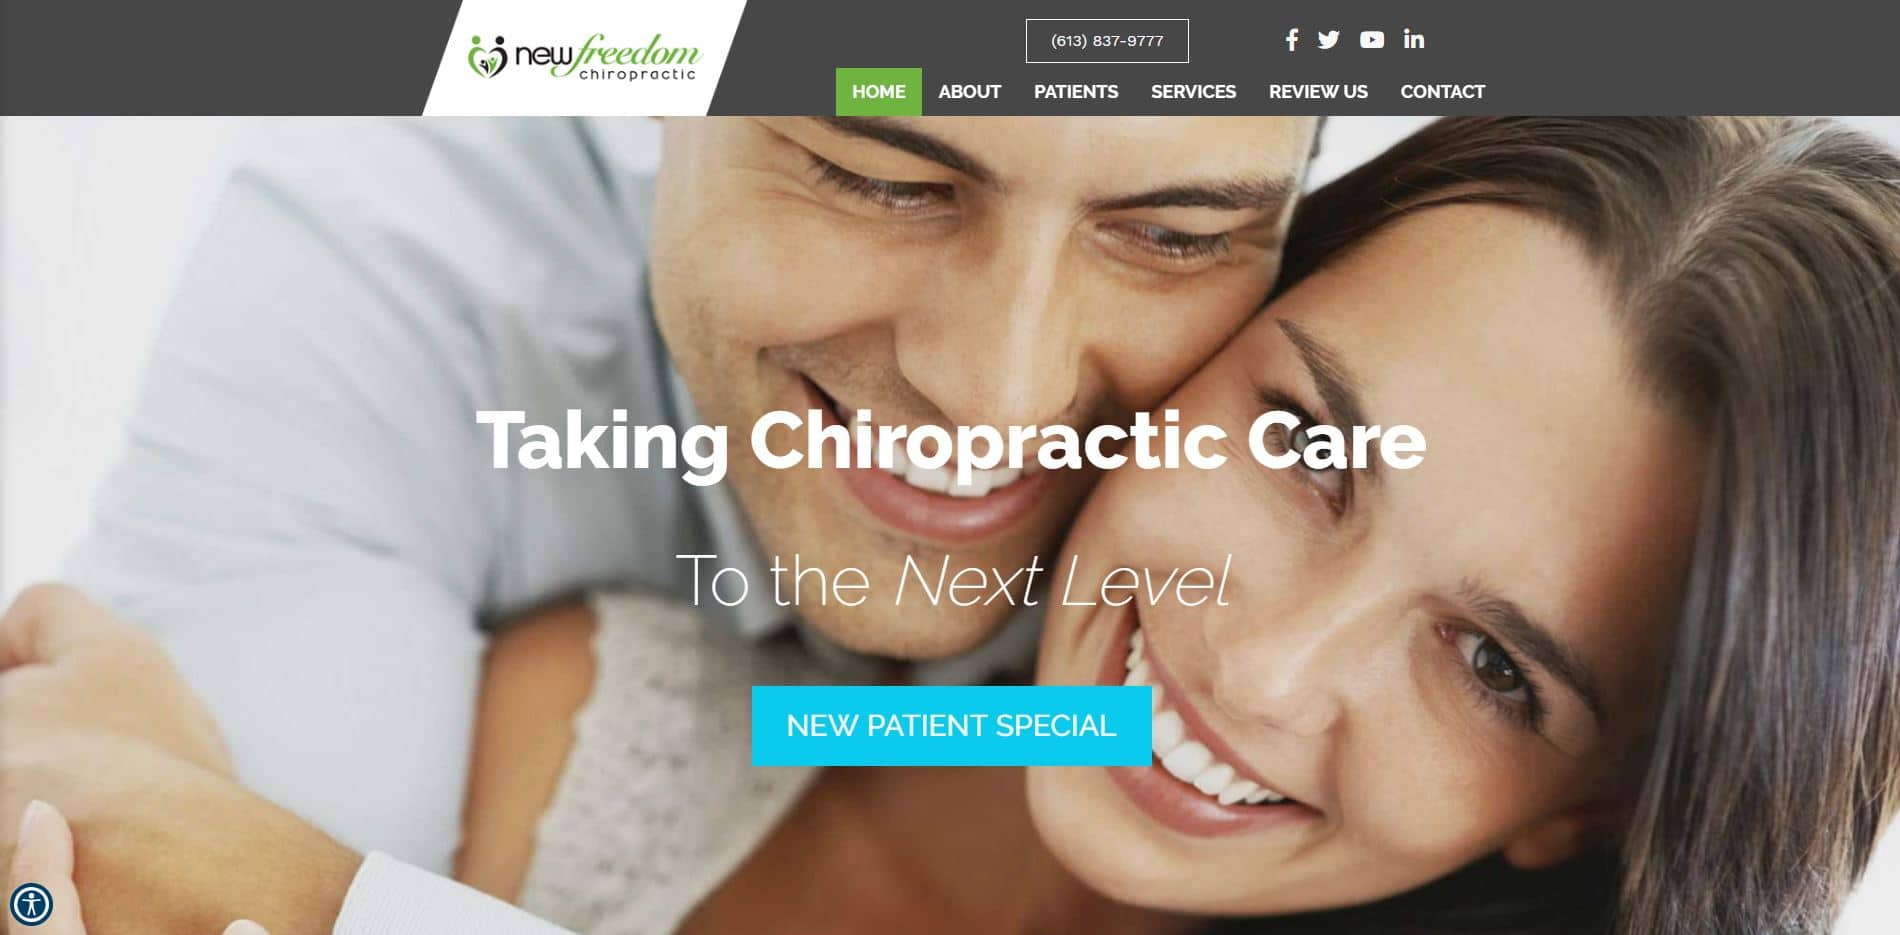 Chiropractor in Orleans